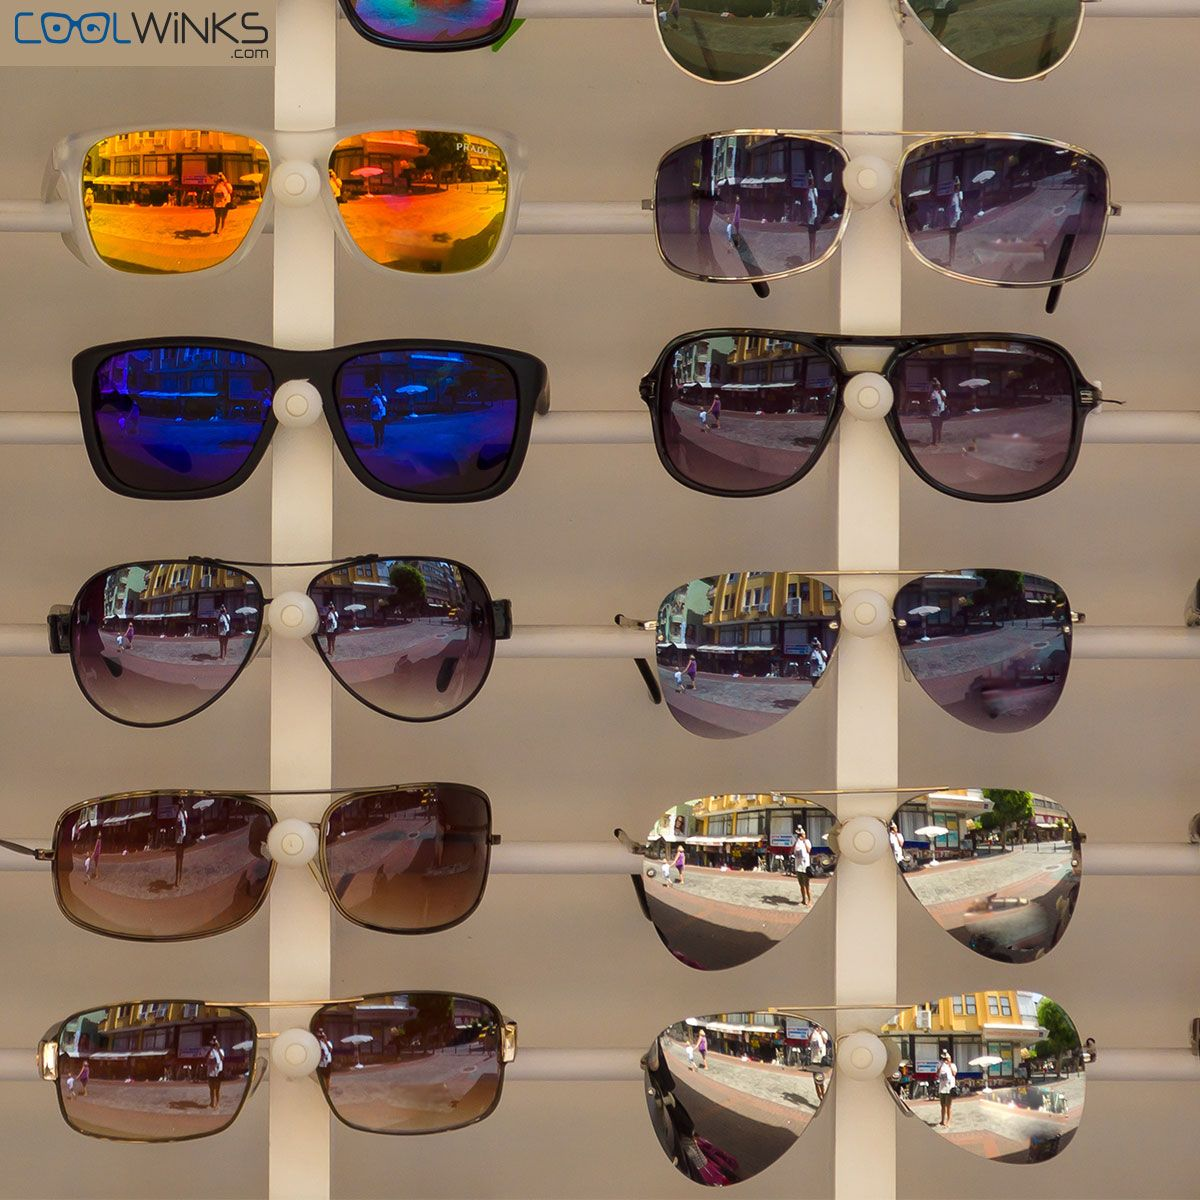 2b704a990cf The Most Awaited Collection of Summer has arrived! UPTO 85% OFF on Branded  Sunglasses  Coolwinks Summer Sale. Shop Now.